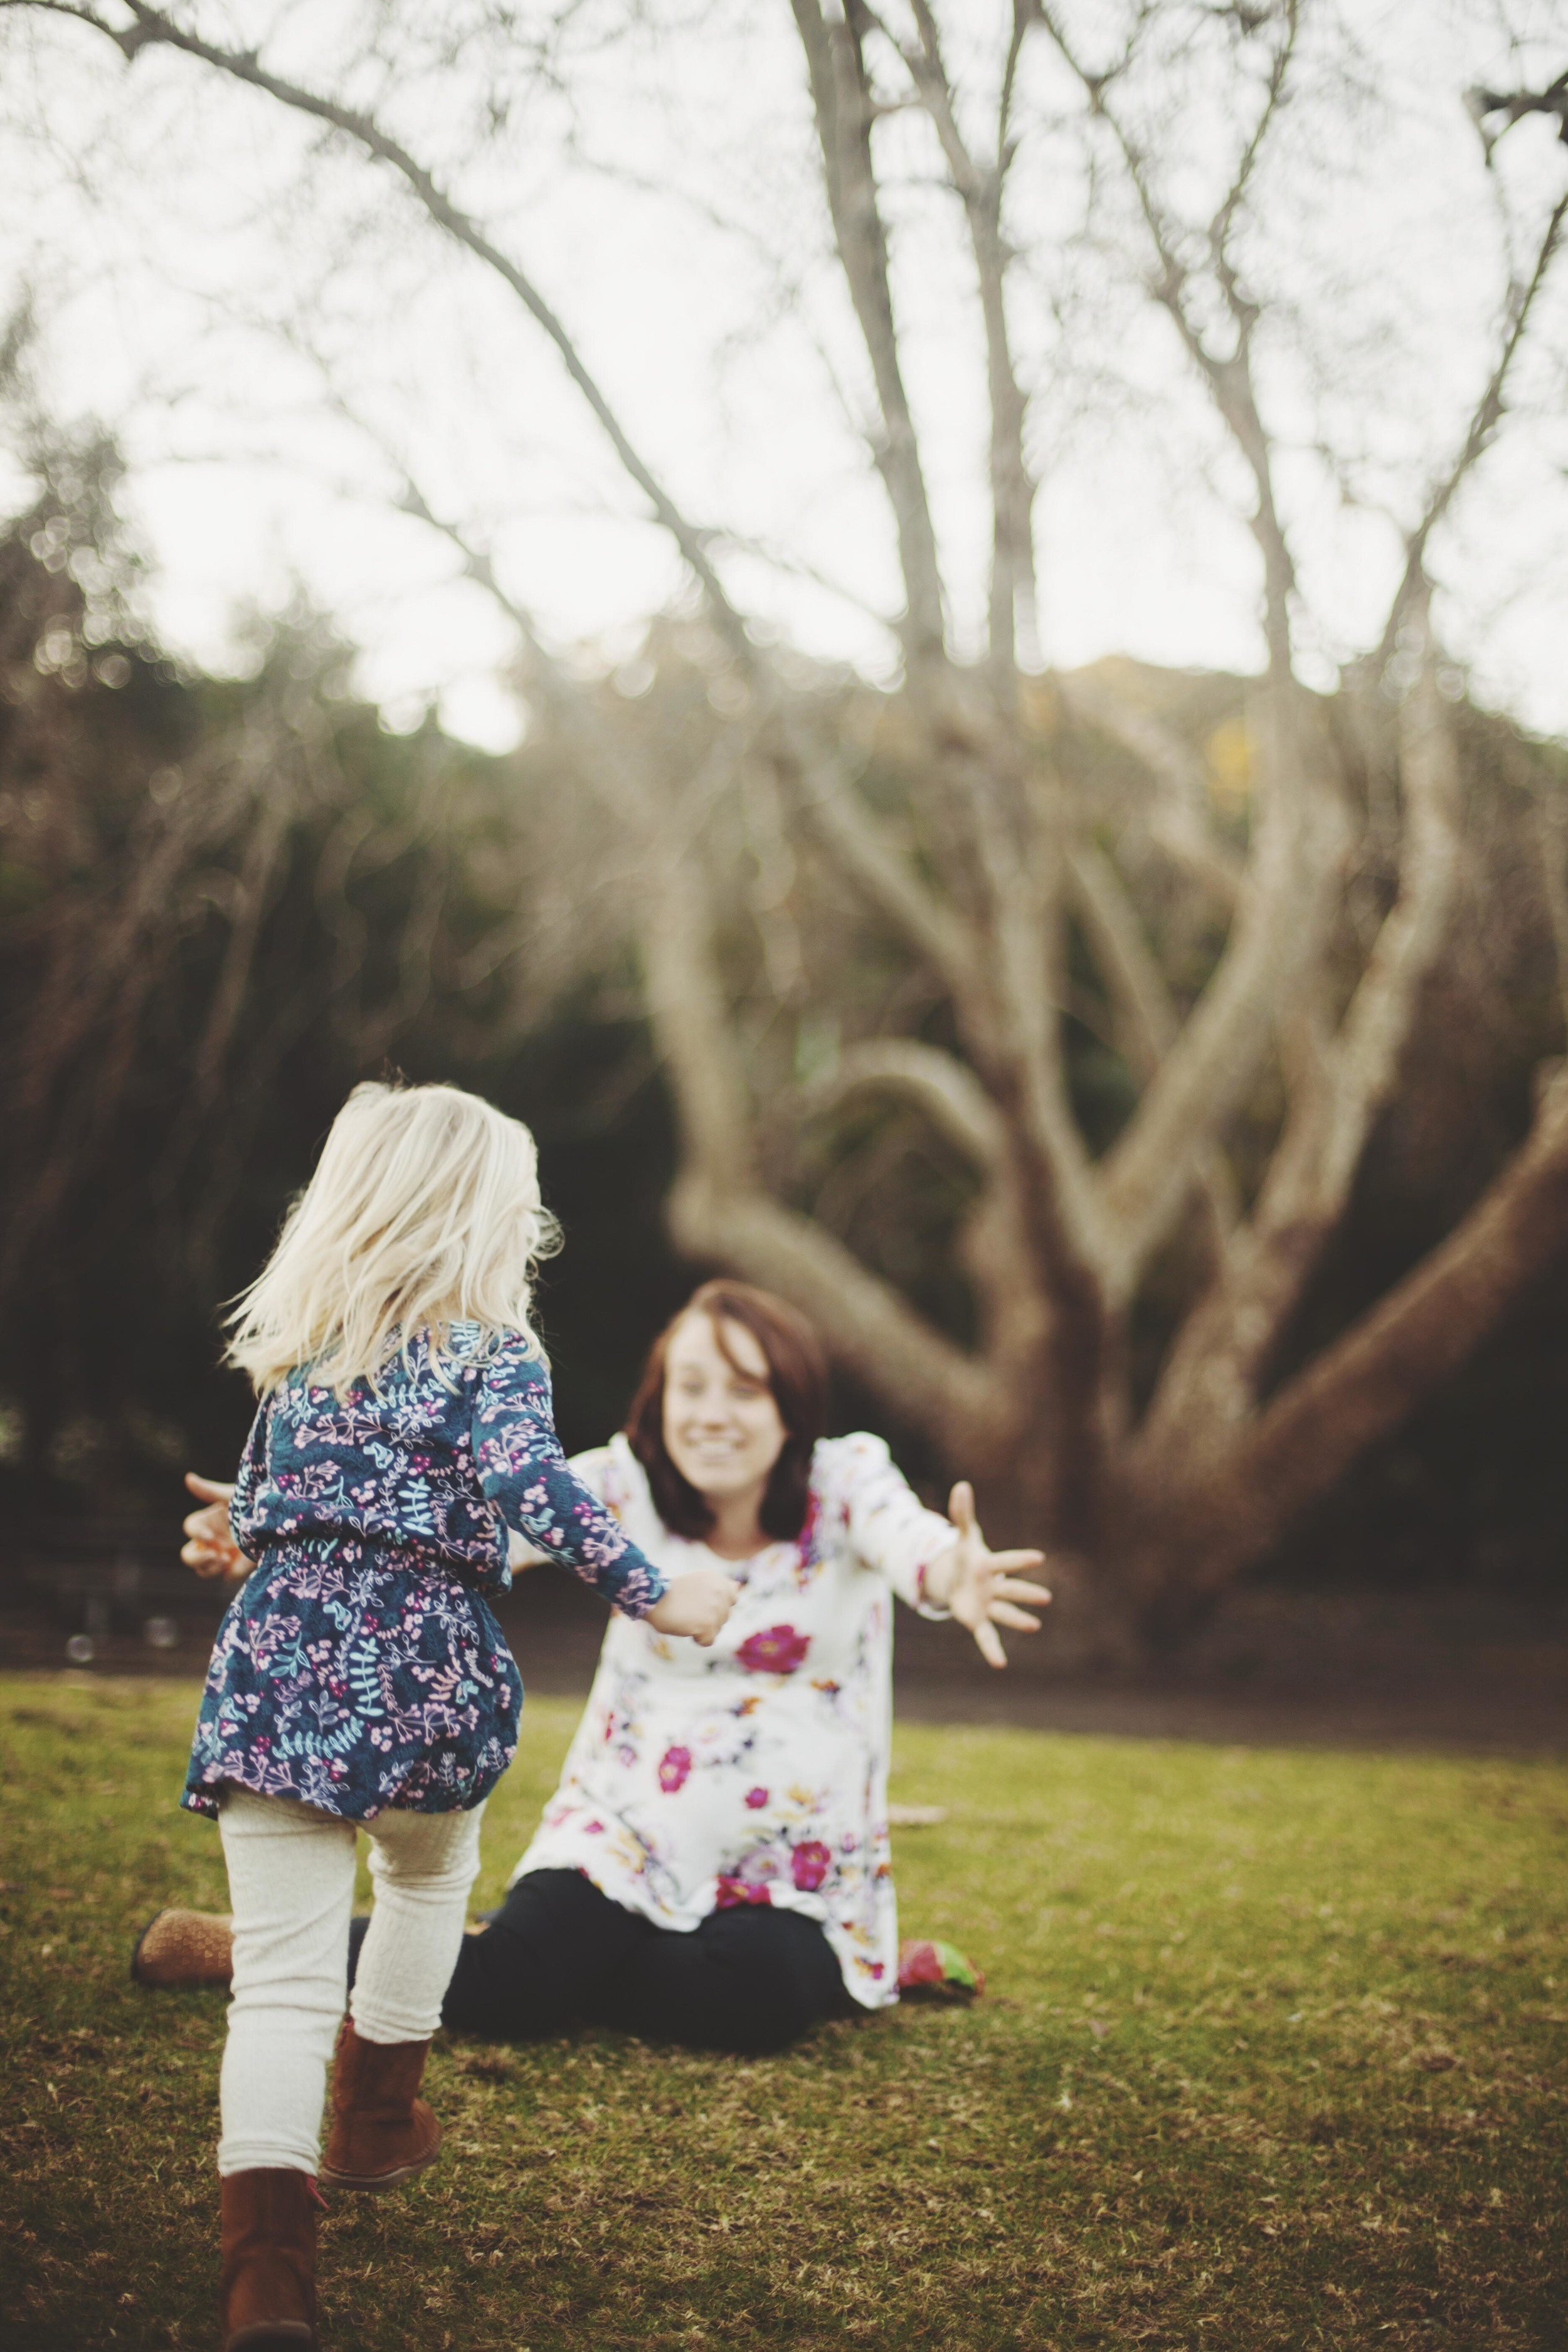 mother and daughter laughing on grass